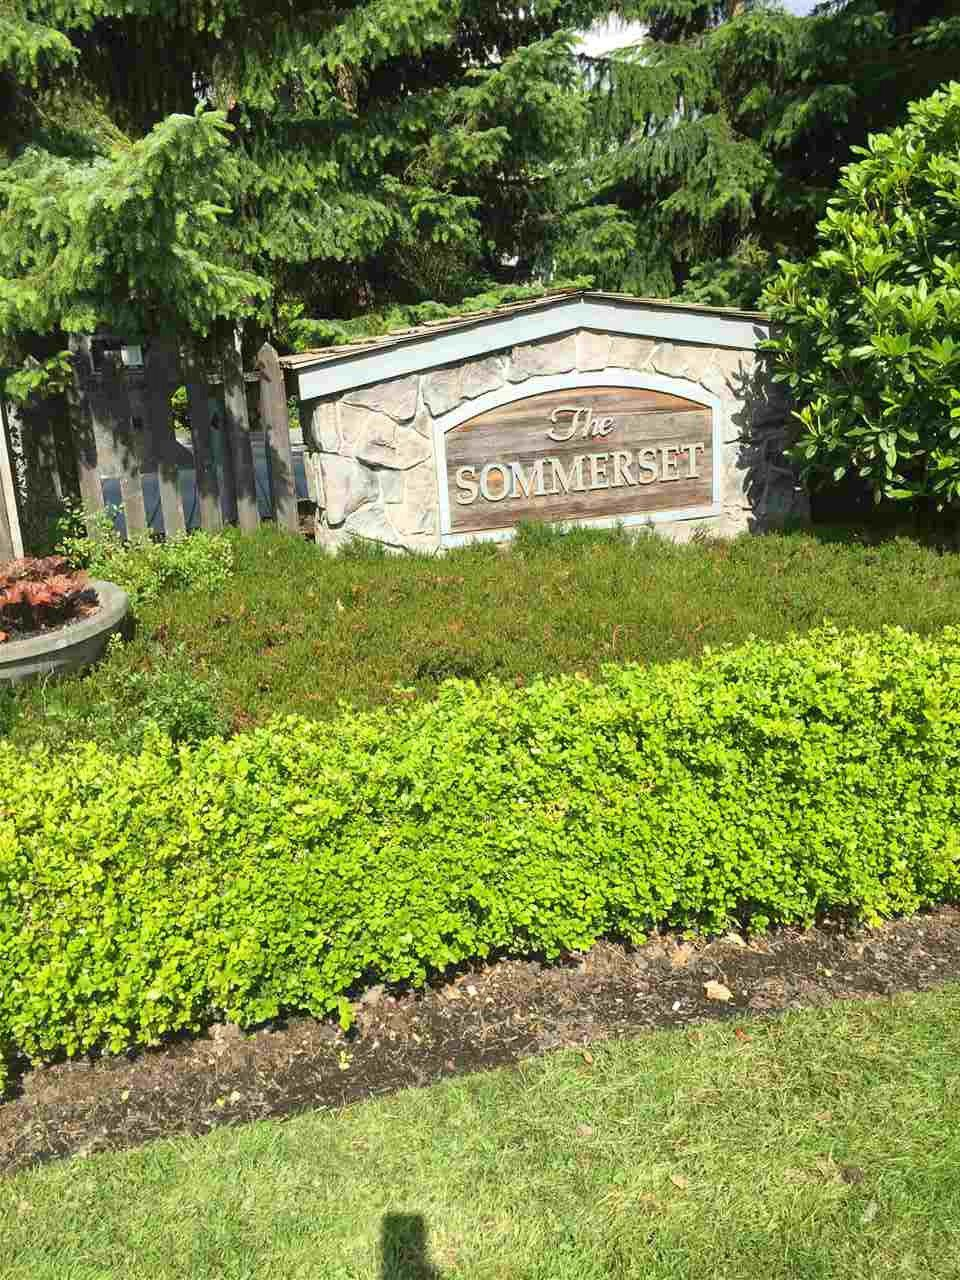 """Main Photo: 312 10188 155 Street in Surrey: Guildford Condo for sale in """"SOMMERSET"""" (North Surrey)  : MLS®# R2177314"""